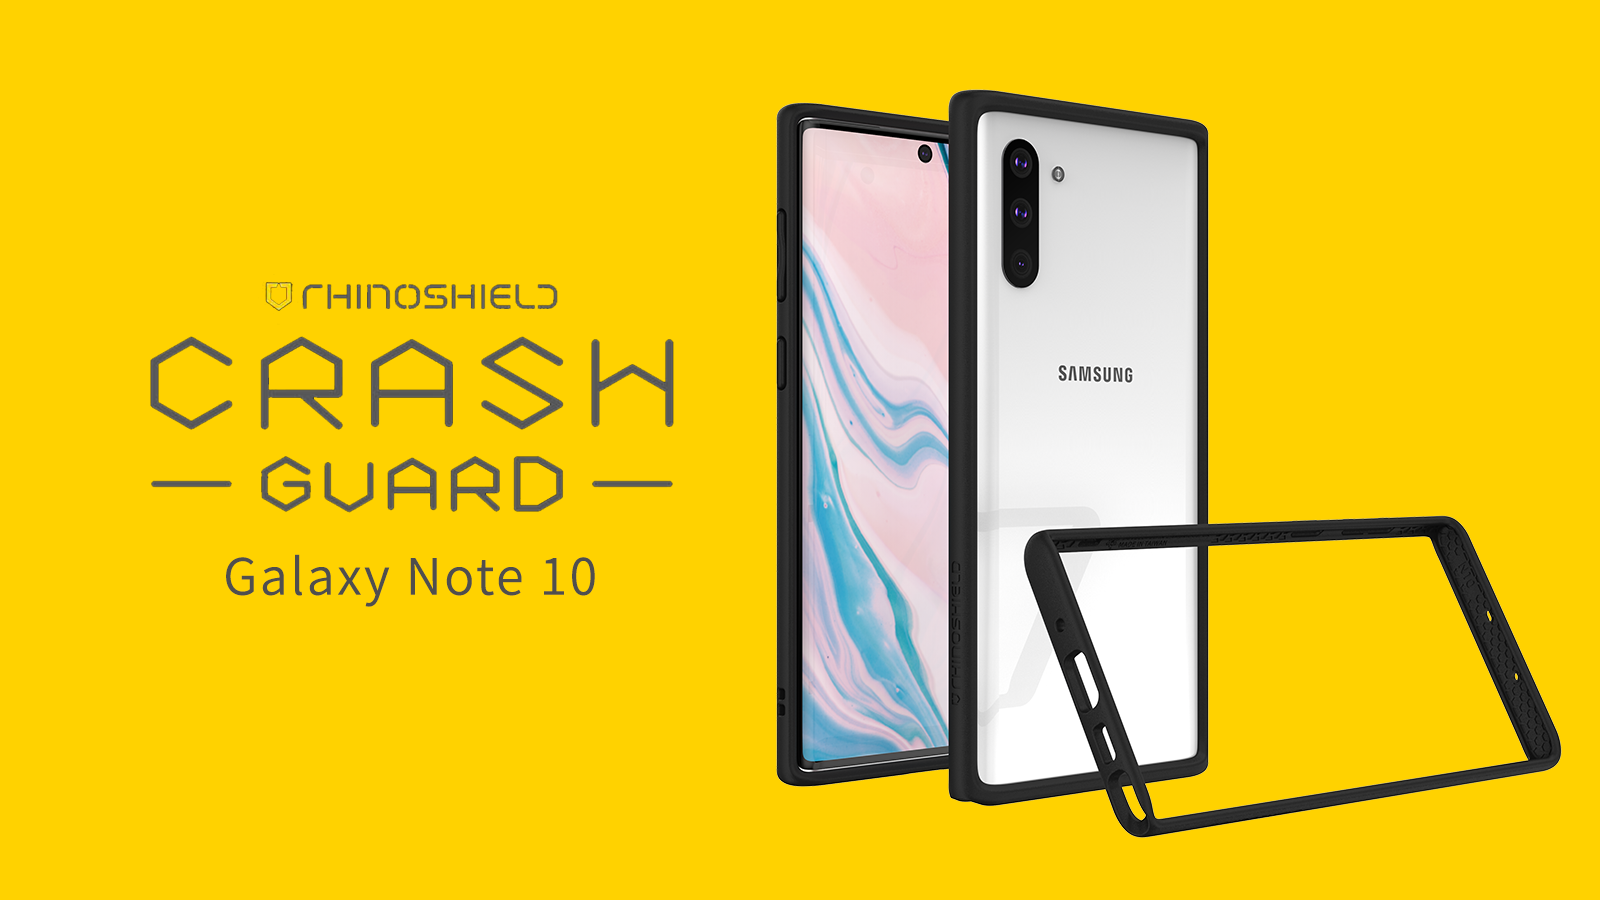 Rhino Shield CrashGuard 三米防跌手機保護殼 - Samsung Galaxy Note 10